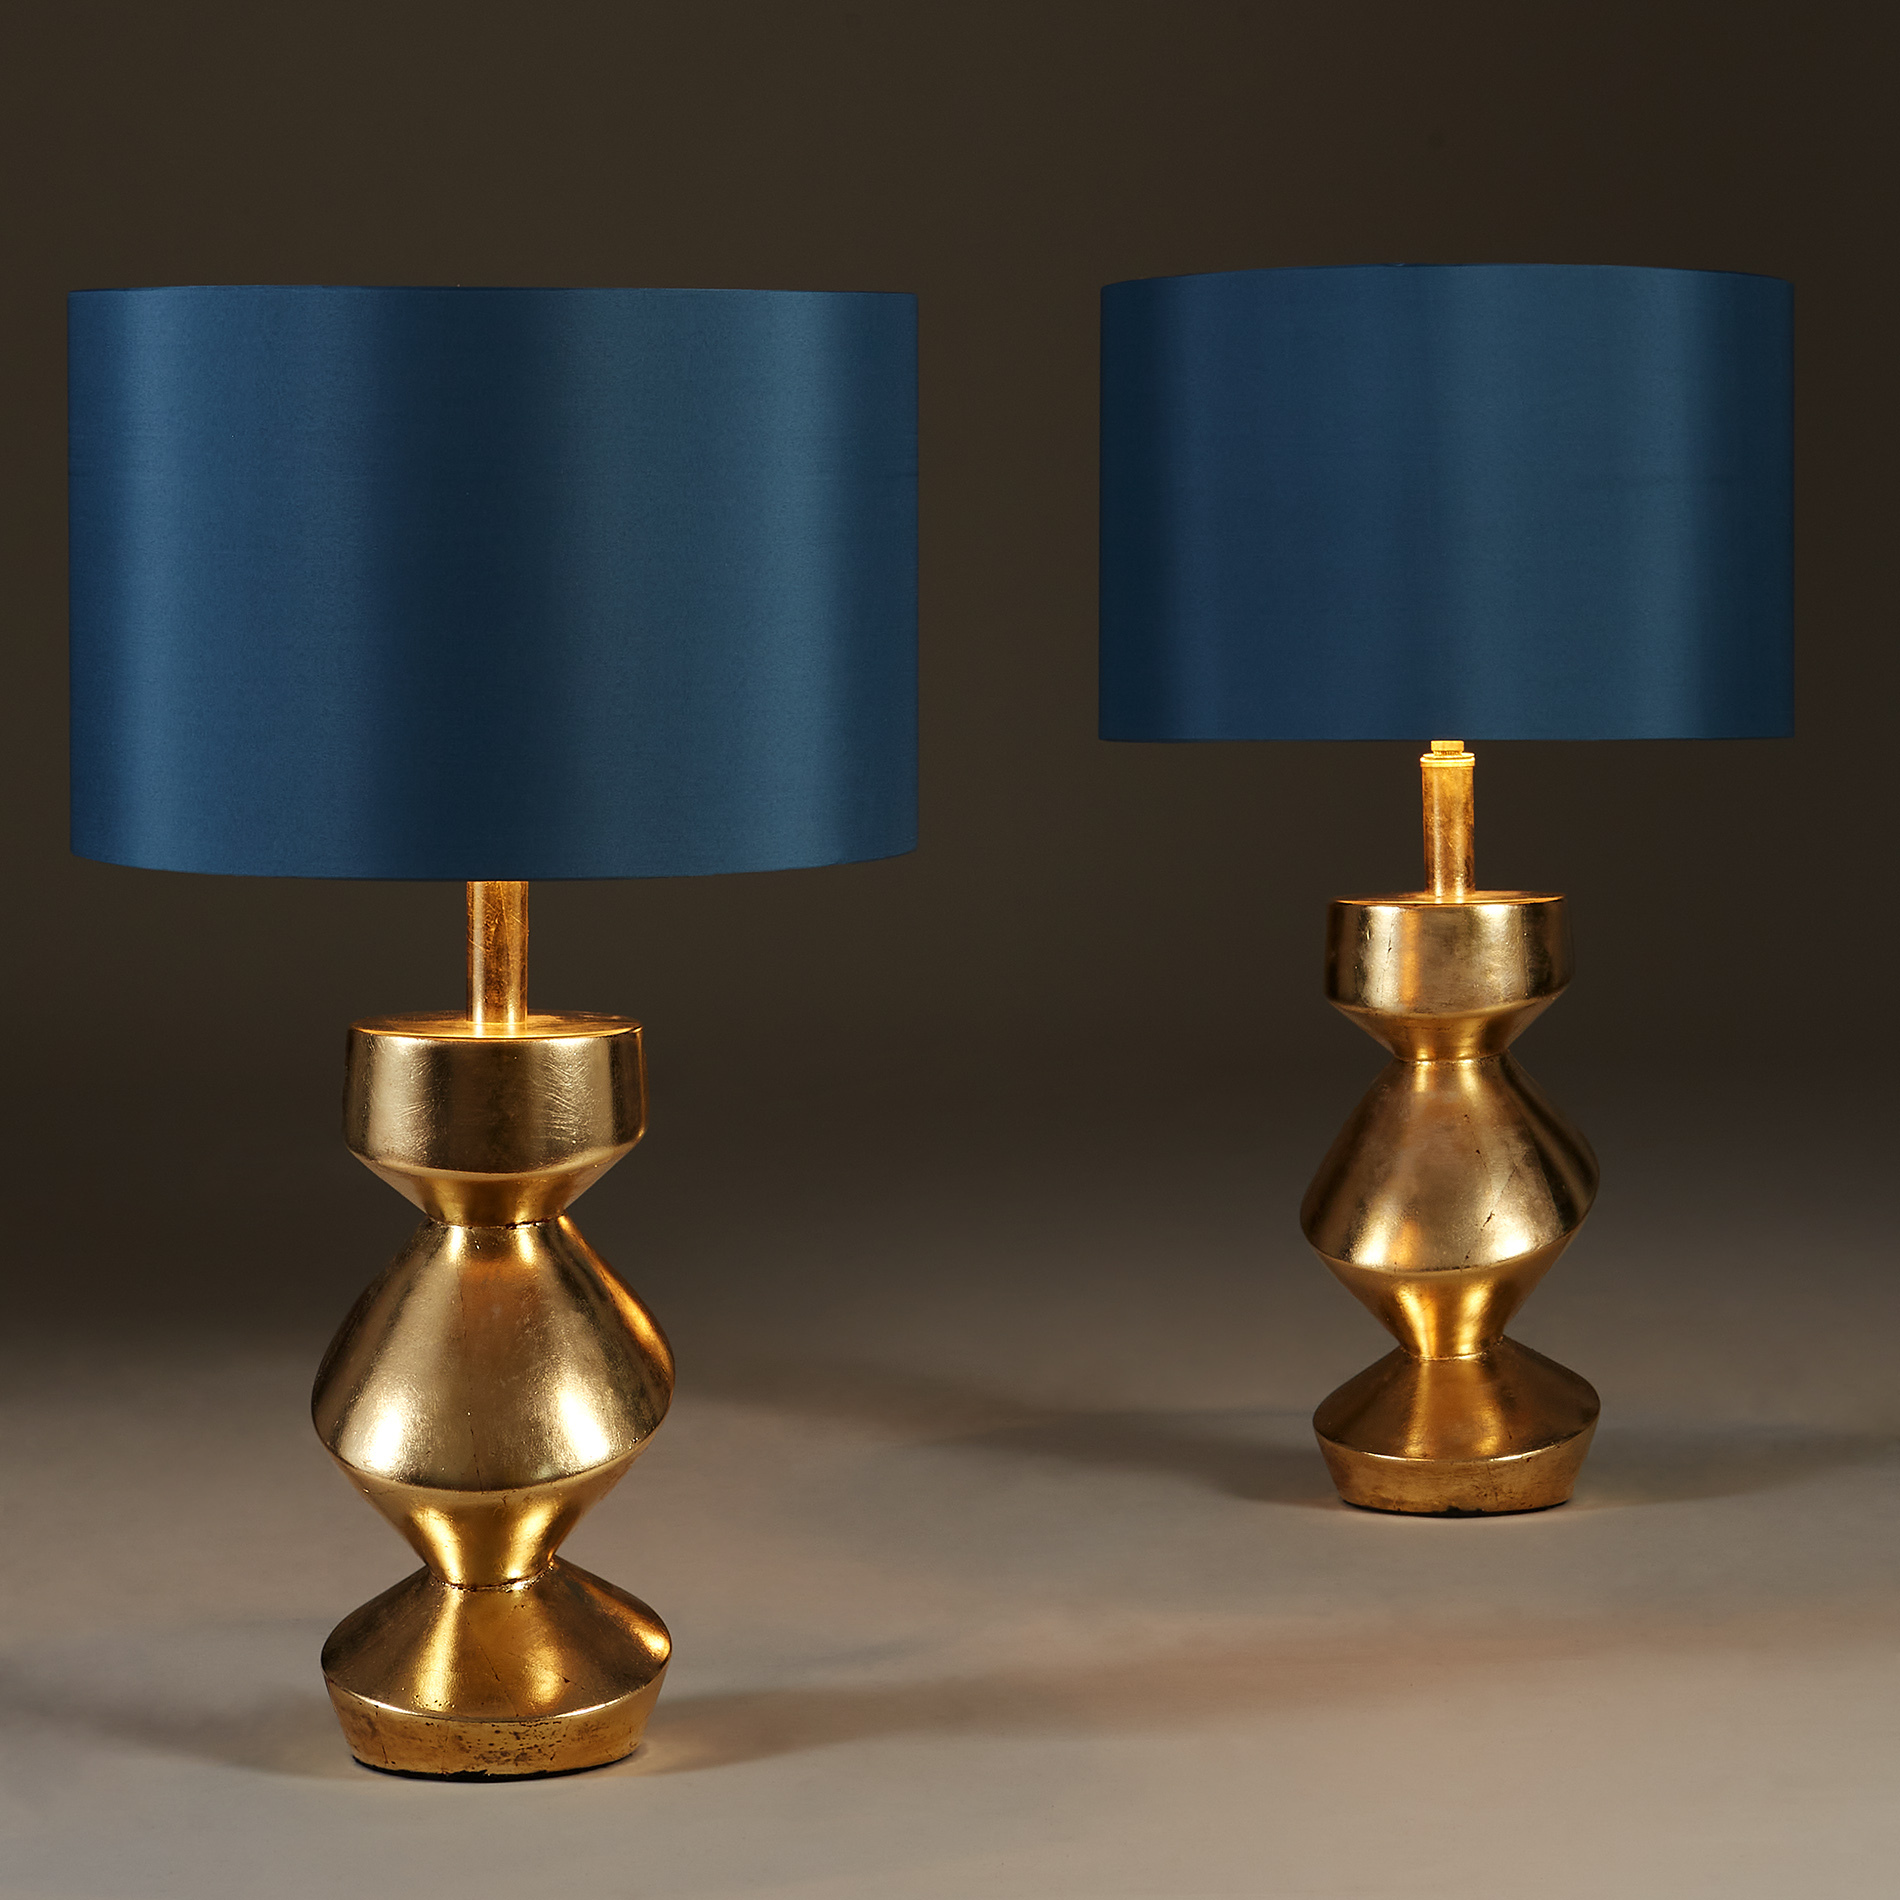 Gold Savoy Table Lamp 20210225 Valerie Wade 2 137 V1